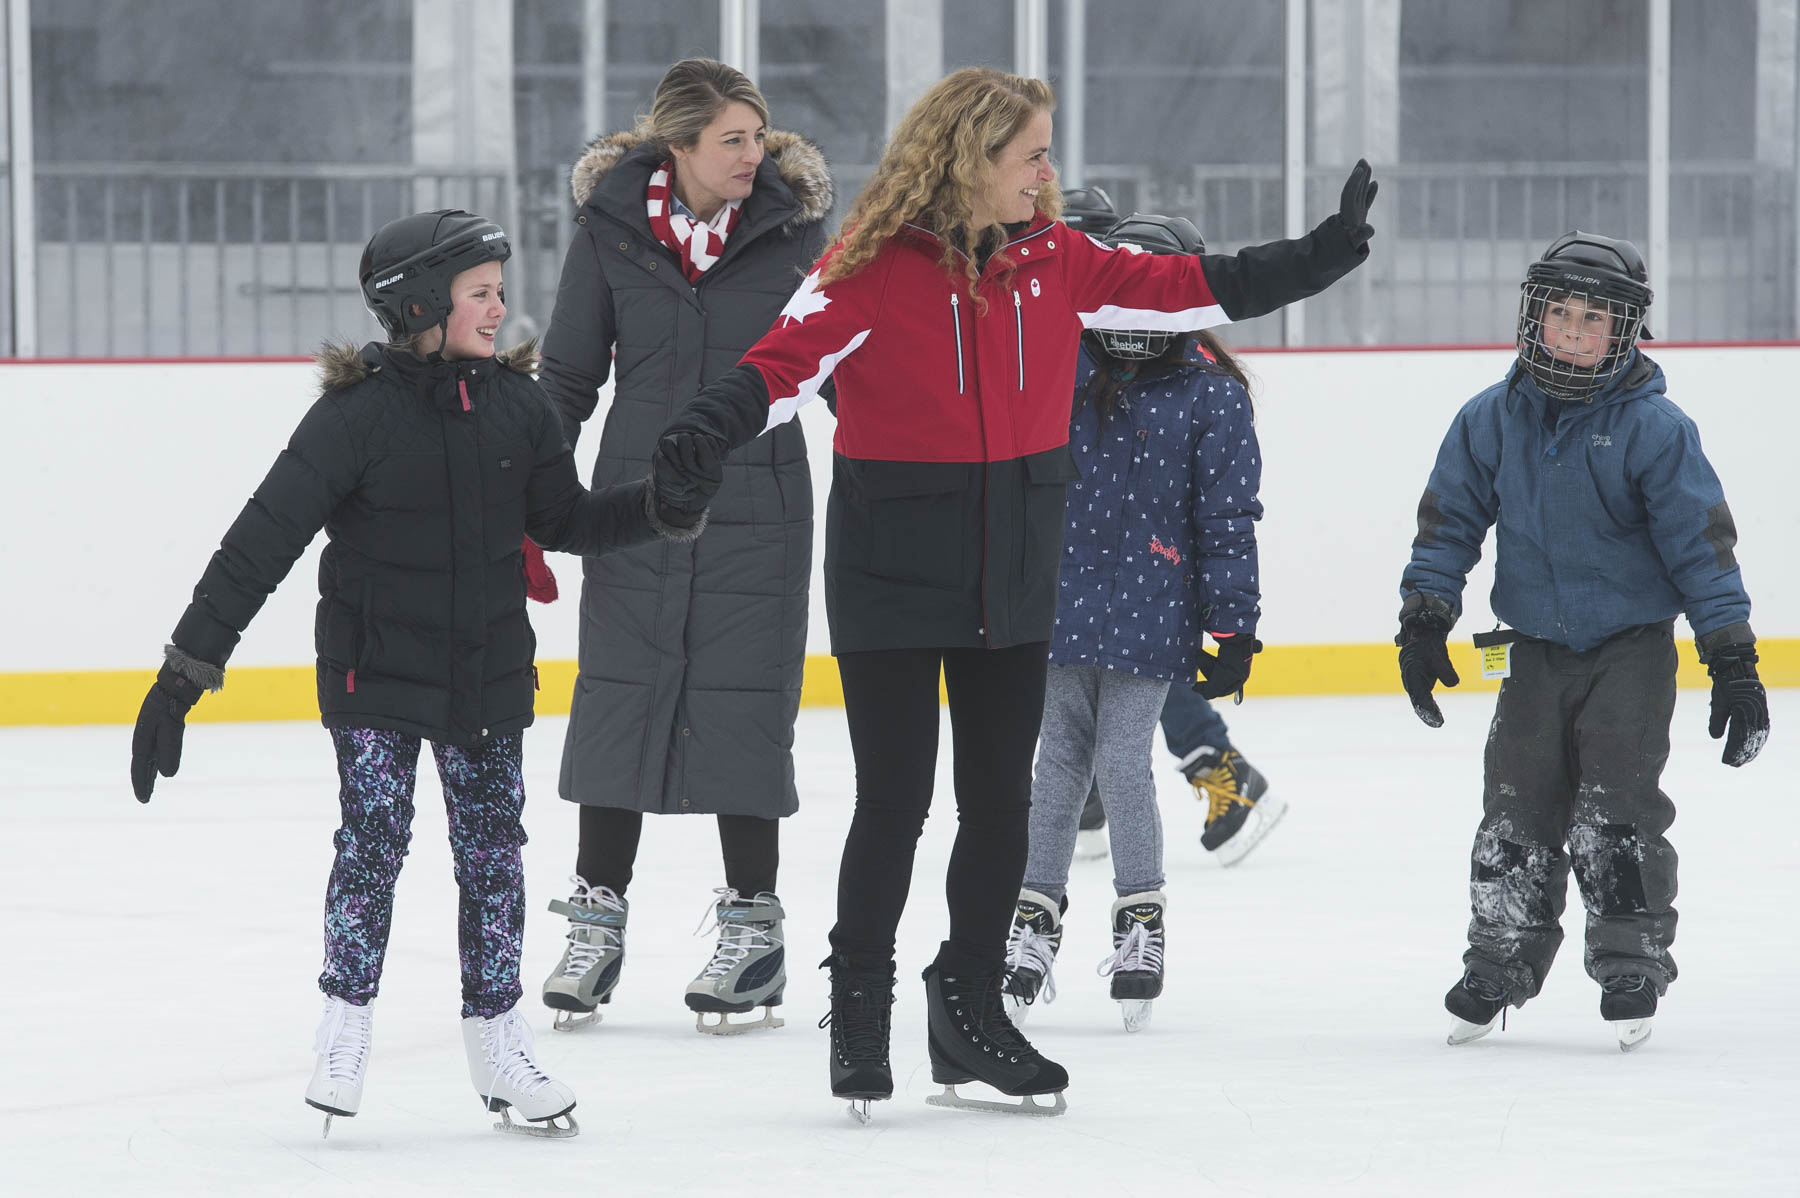 After the official portion of the ceremony, Her Excellency and members of the public skated on the rink.